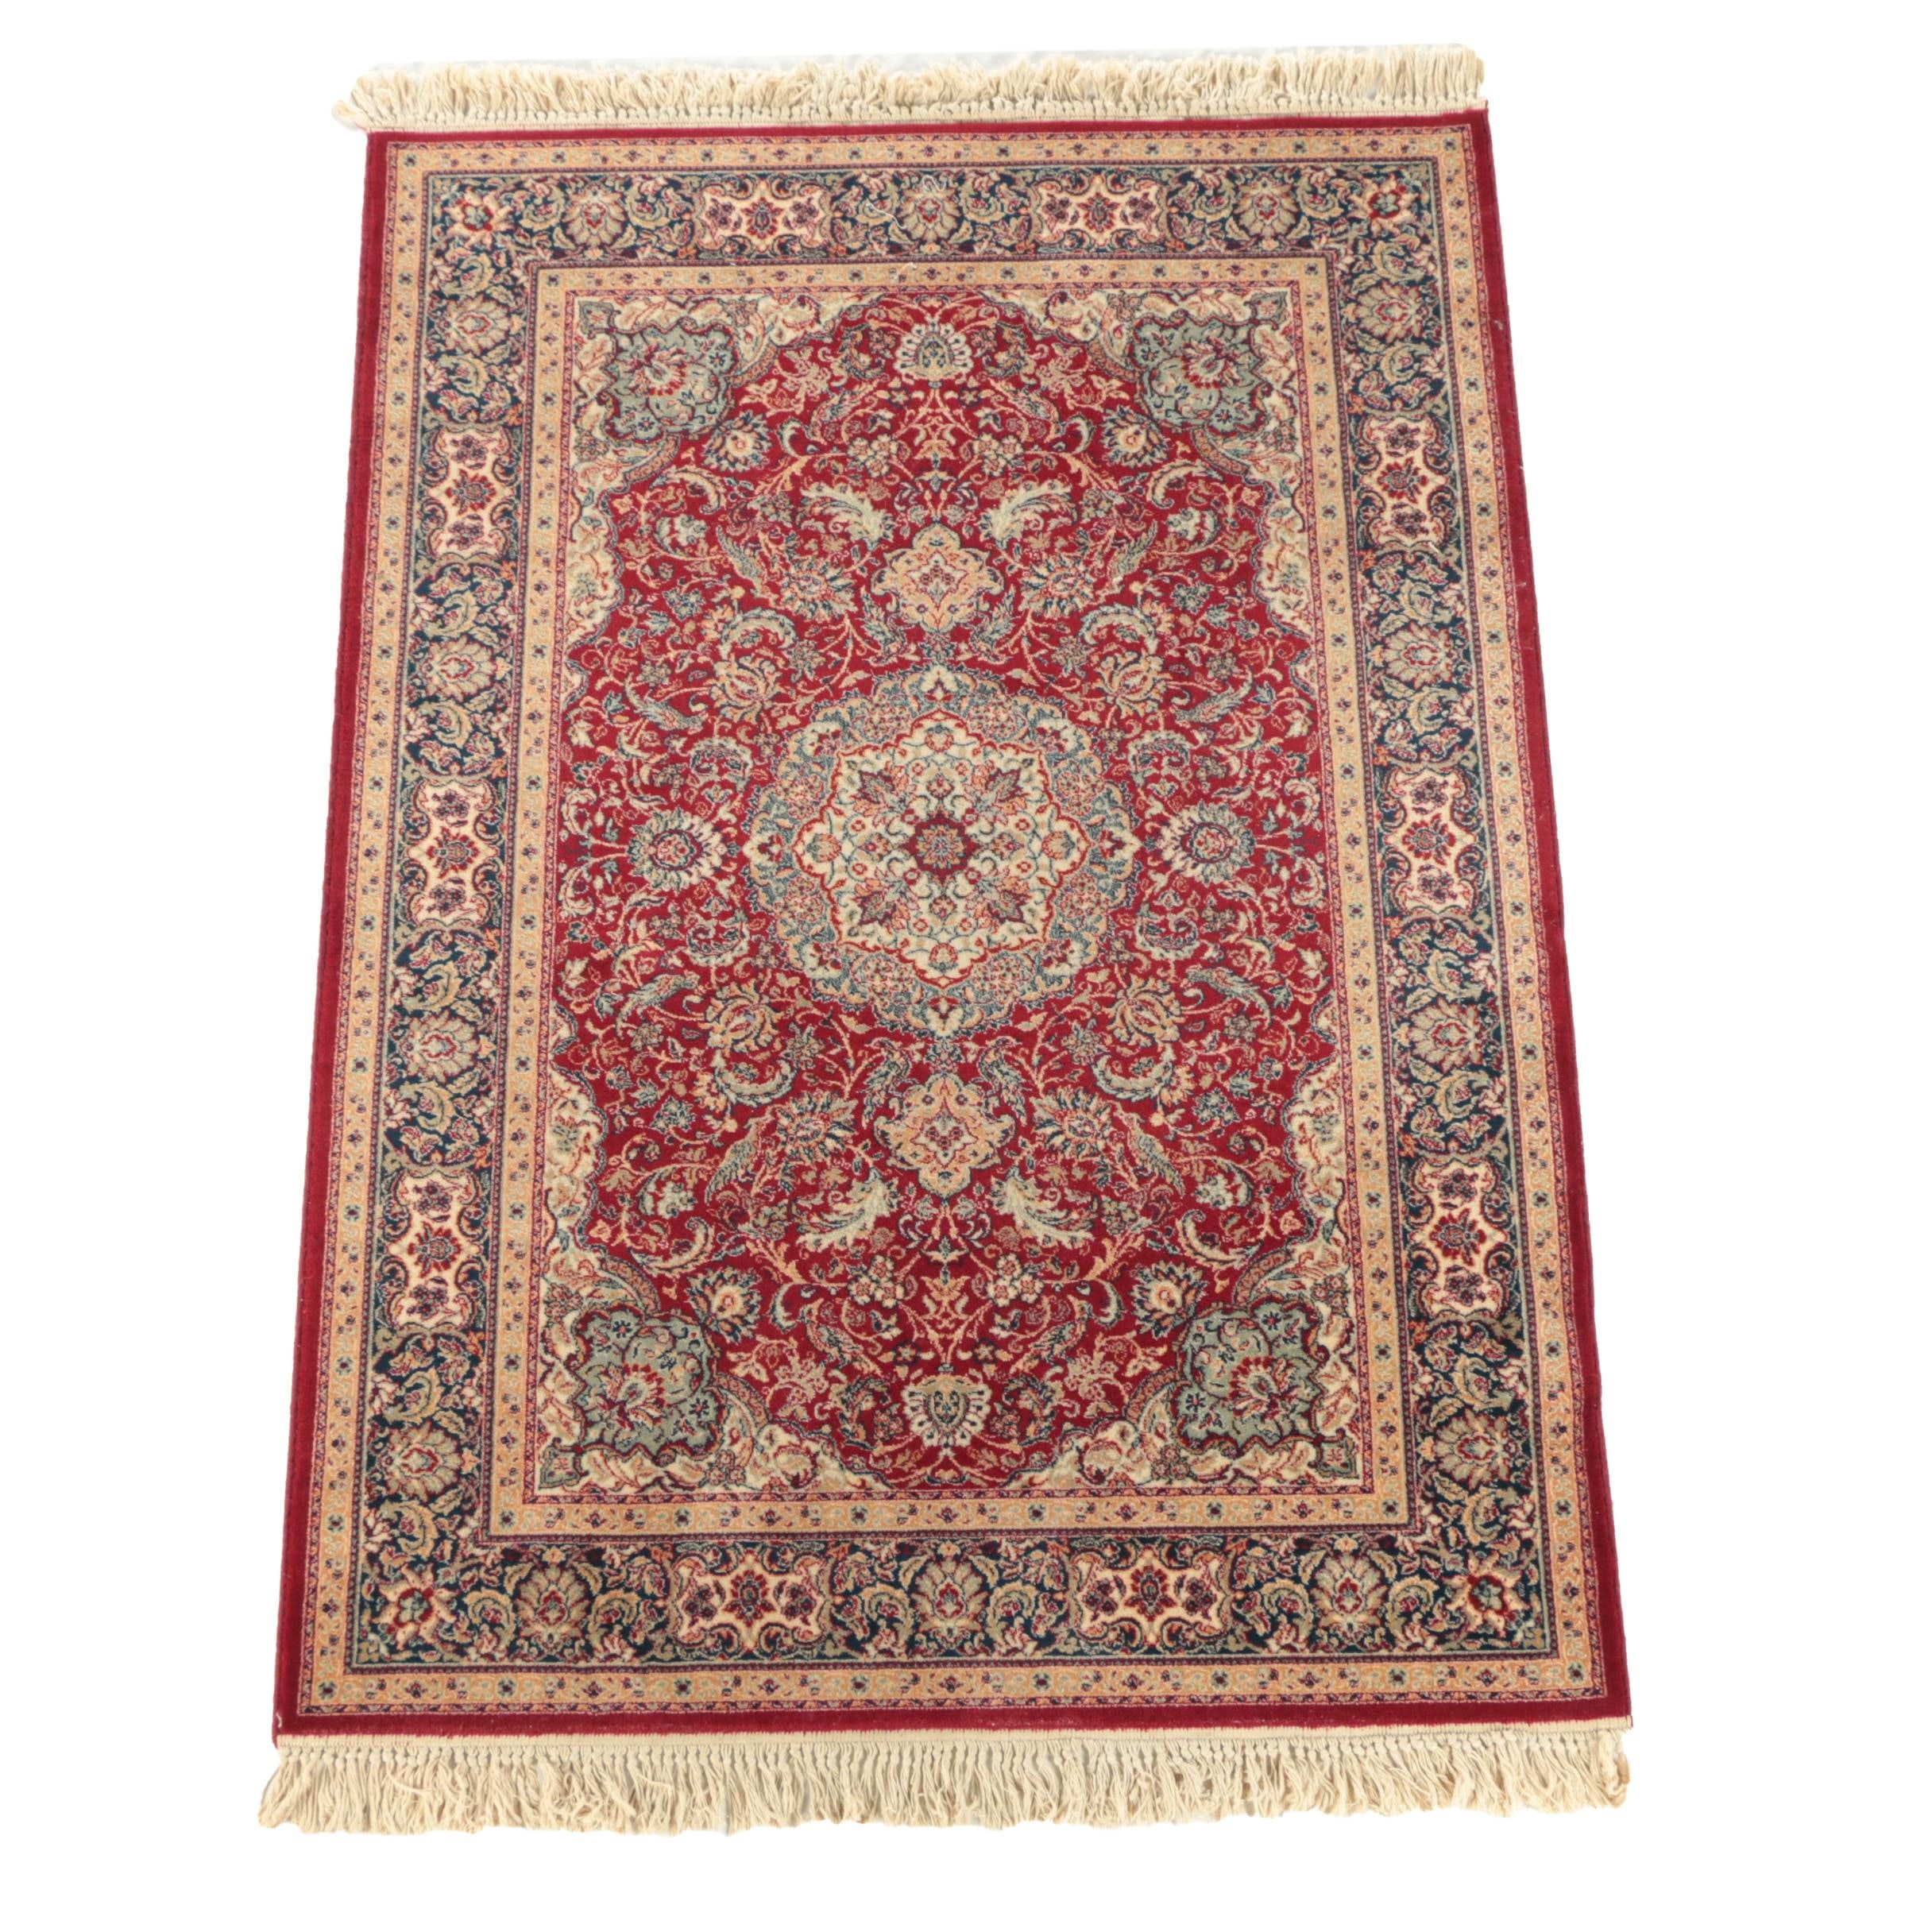 Vintage Power-Loomed Couristan Persian-Style Wool Area Rug